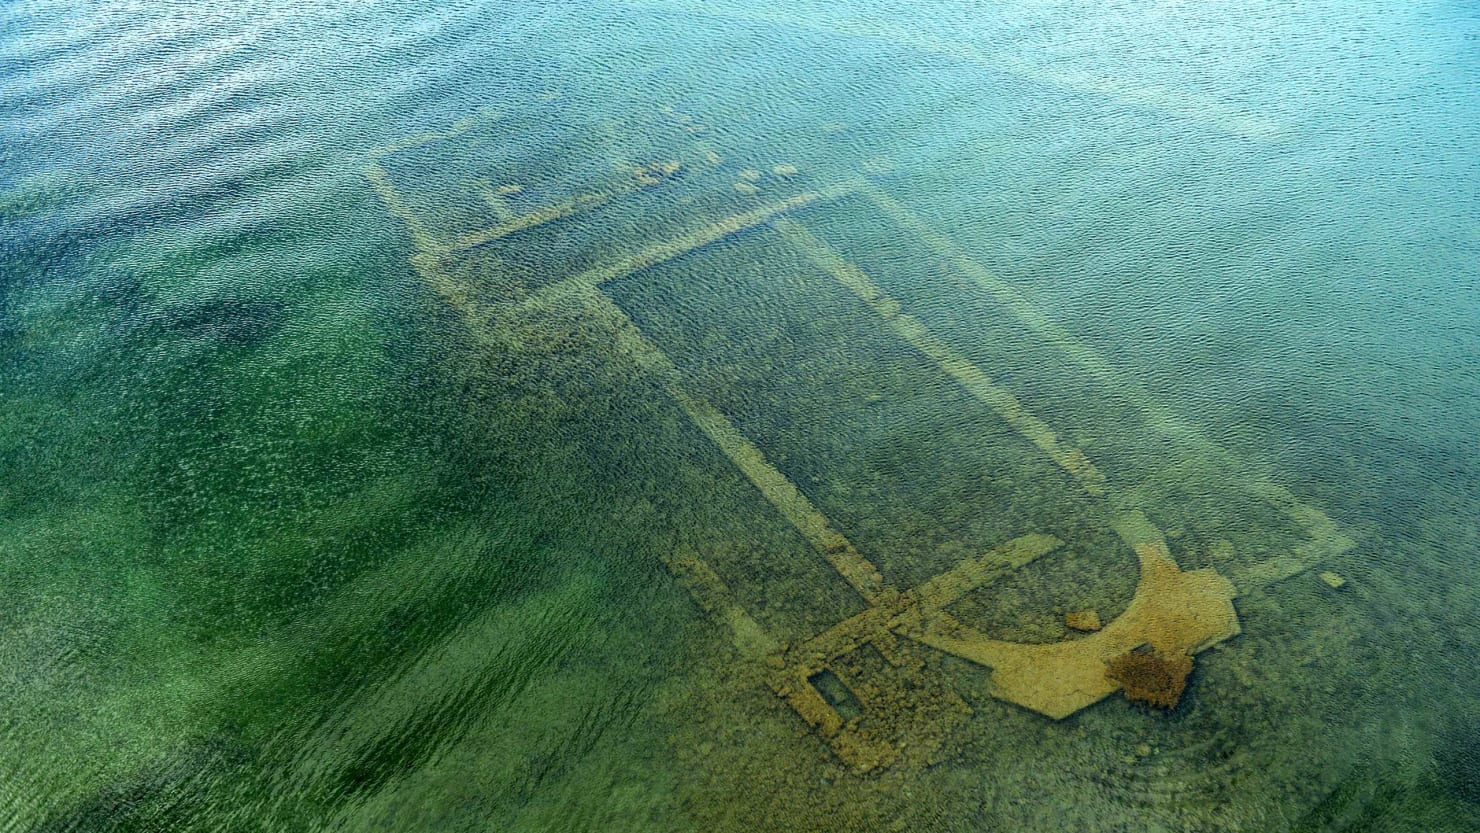 Was Council of Nicaea Church Just Found Under a Lake?